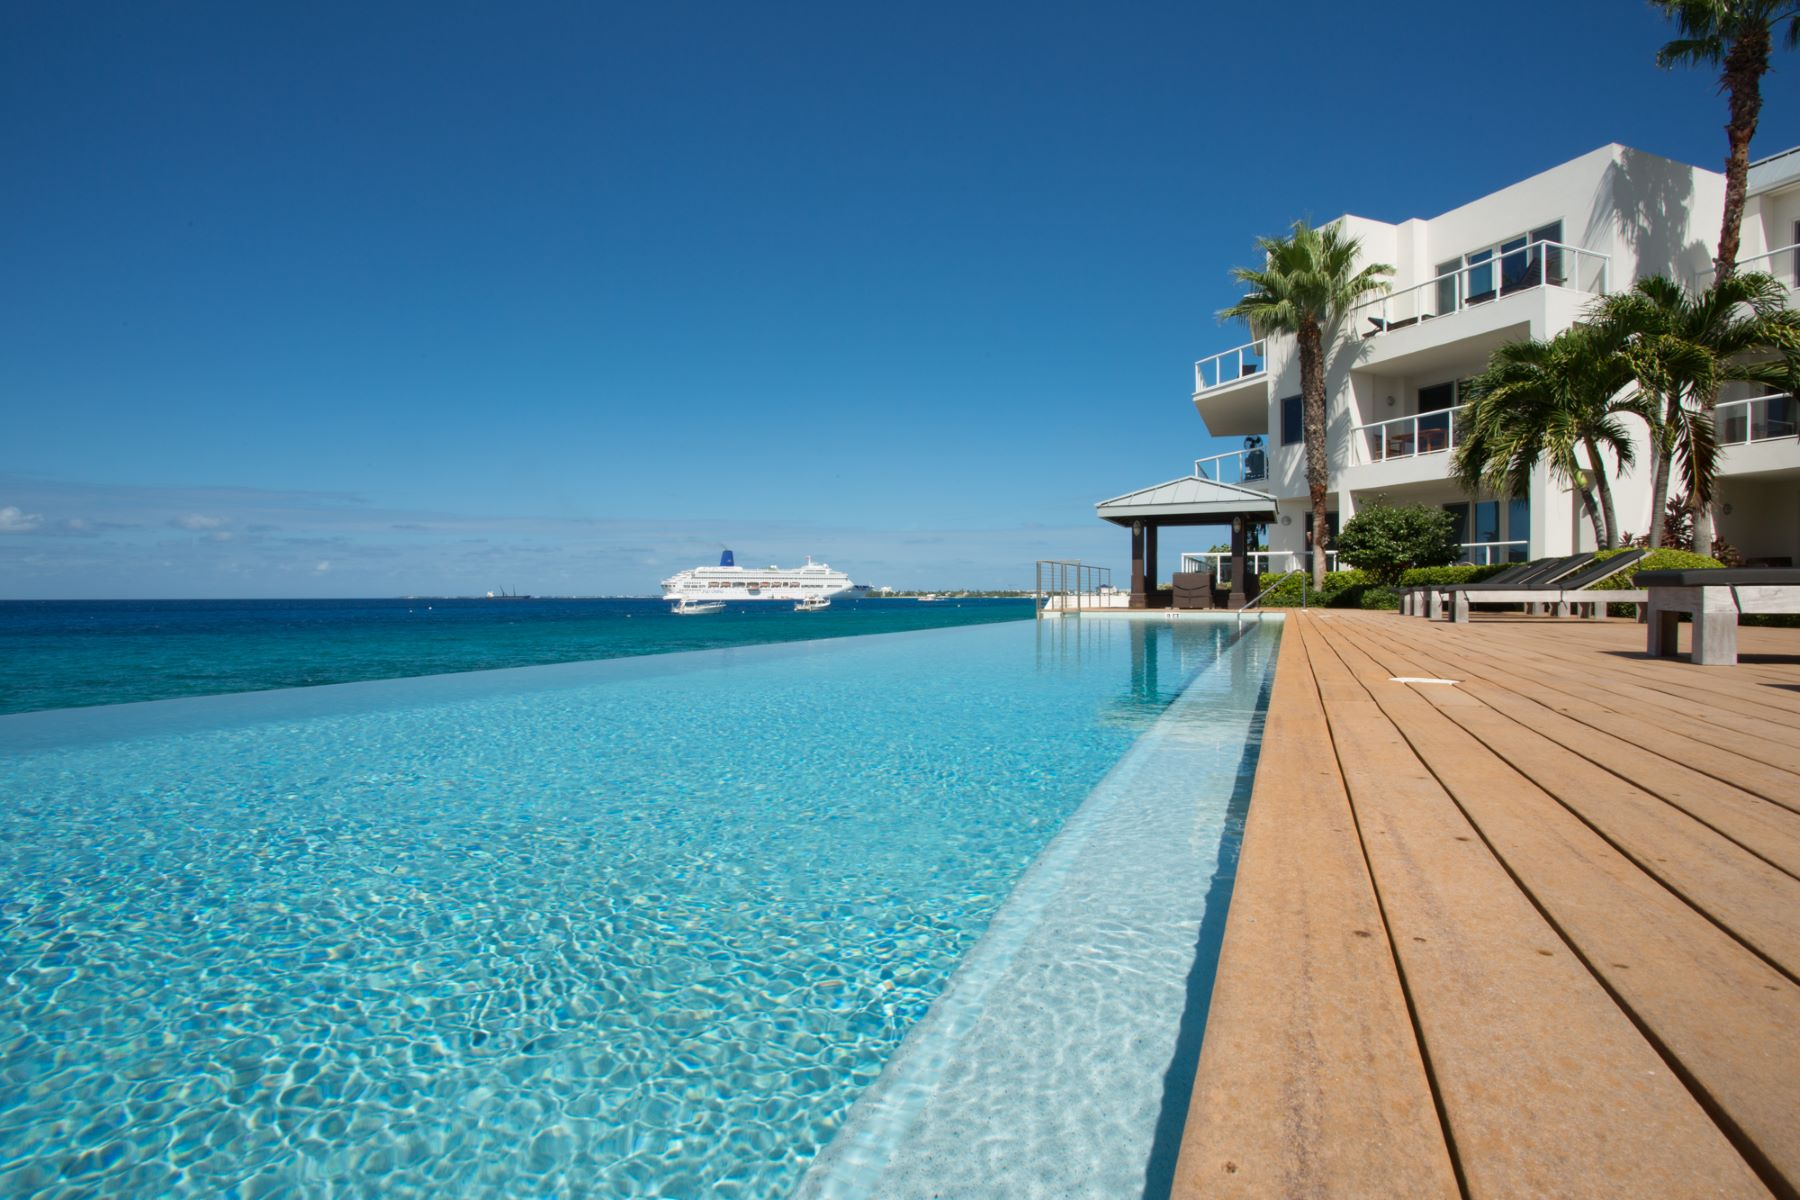 Condominium for Sale at SeaView Residences SeaView Residences 102 S Church St George Town, KY1 Cayman Islands